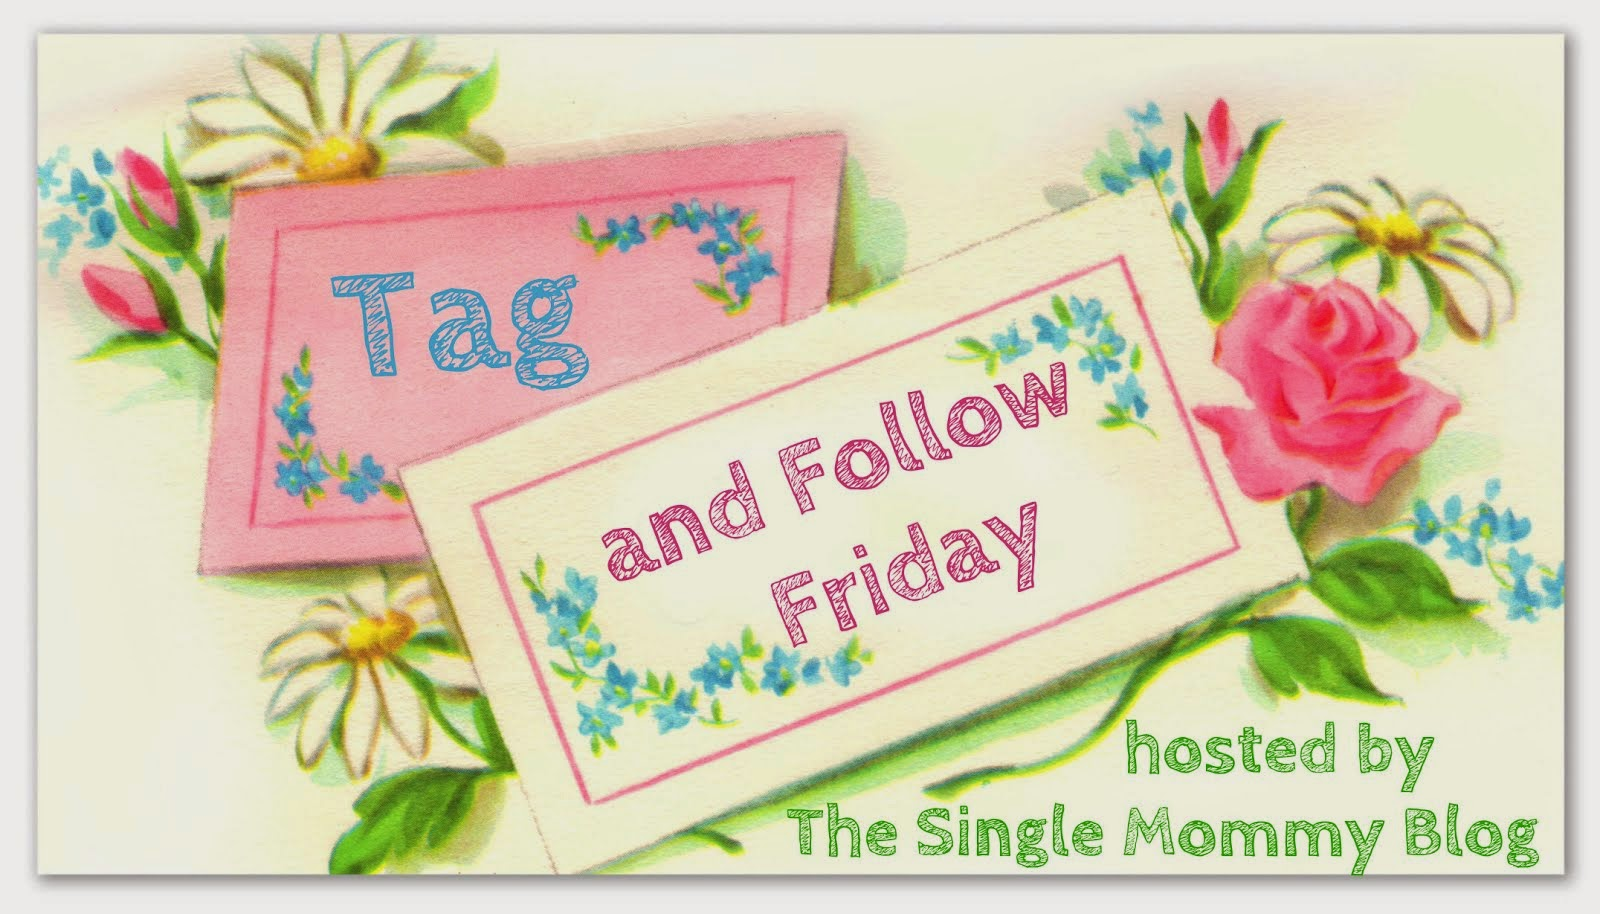 Announcing Tag and Follow Friday!